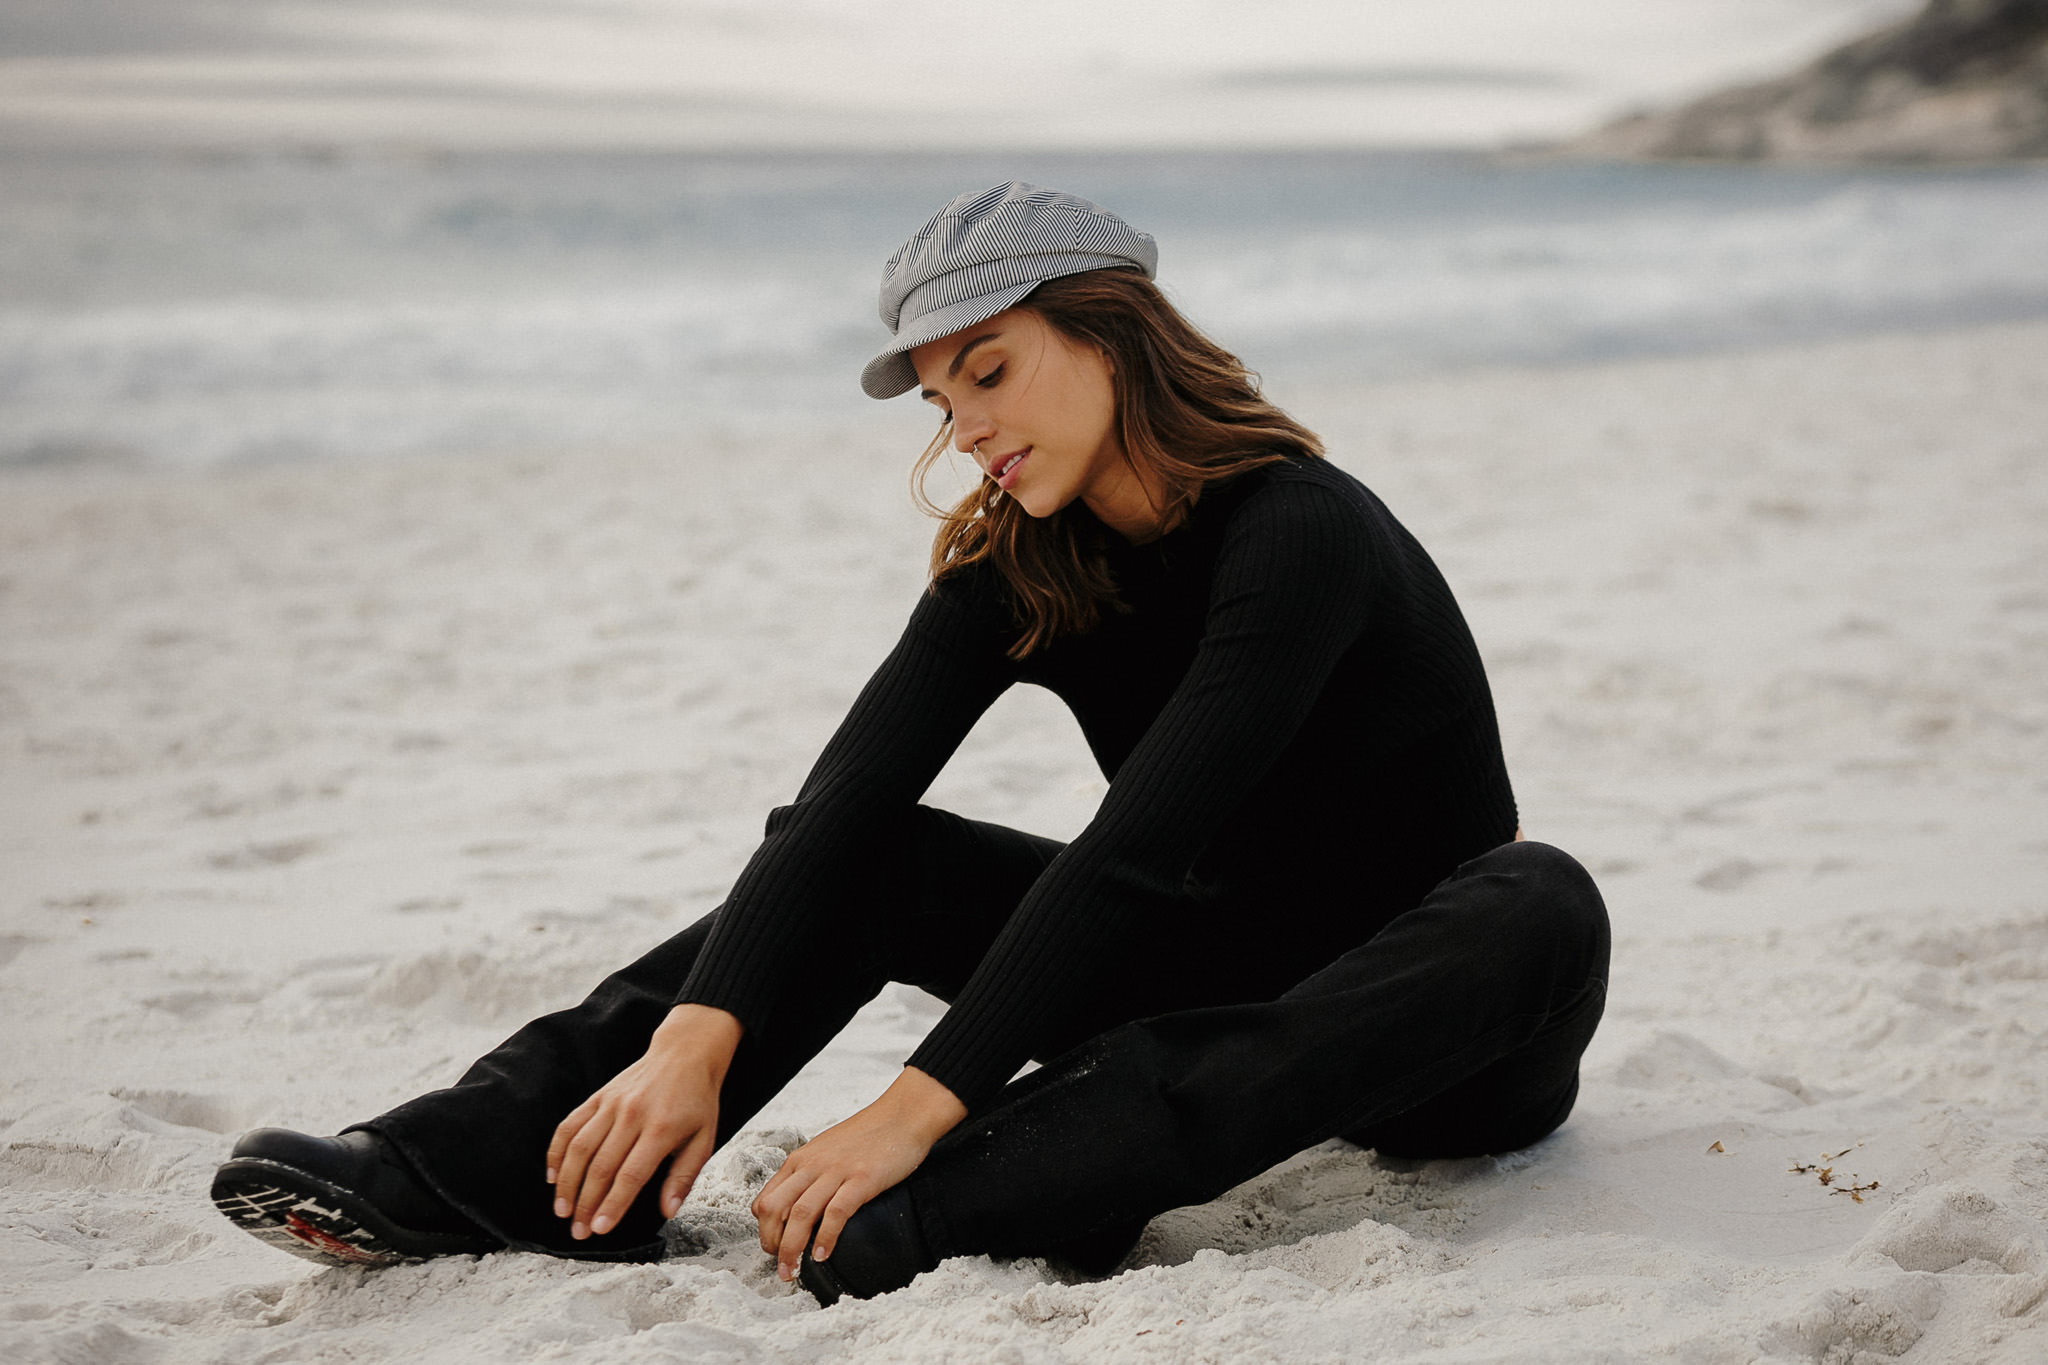 Portrait Shoot with Janaina looking like Emma Watson at Clifton Beach, Cape Town. photo by Farina Deutschmann